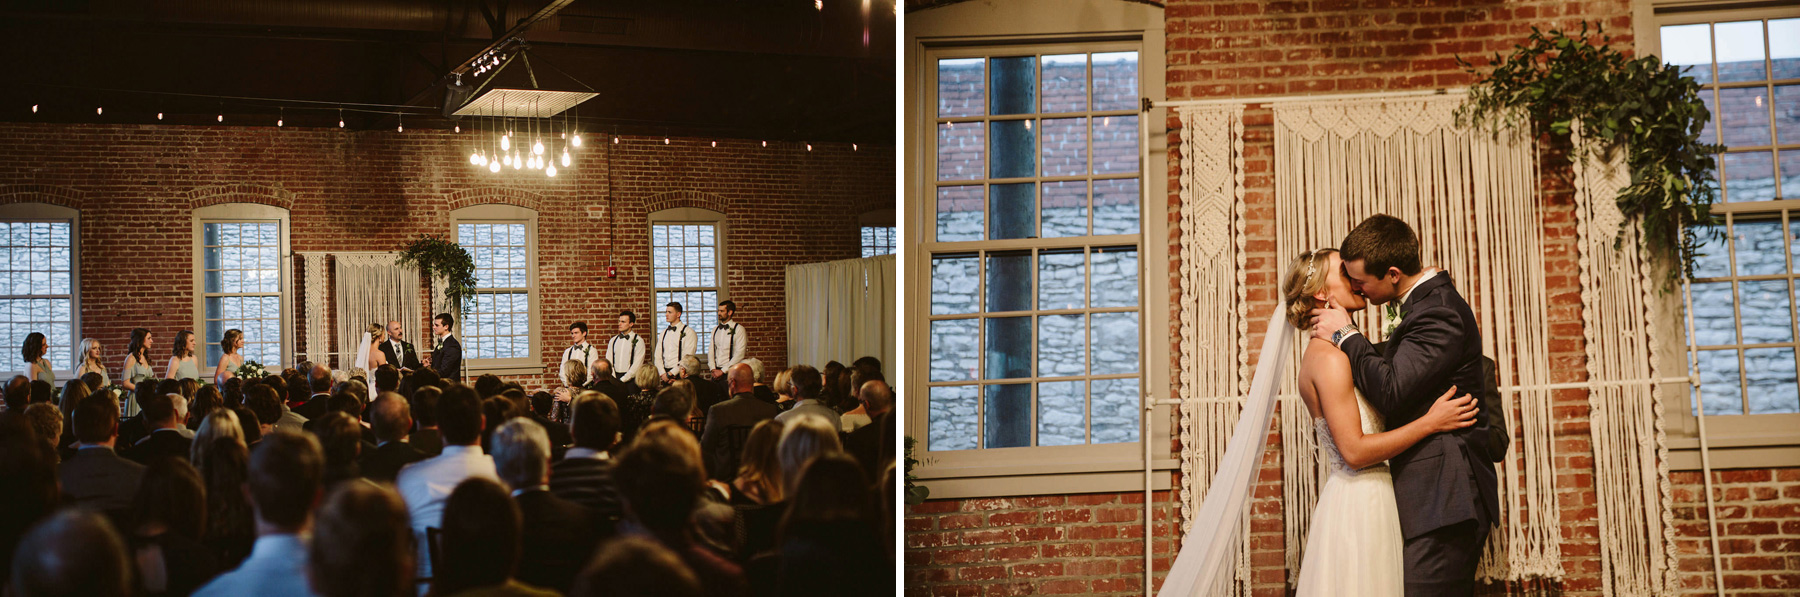 14_Beck Event Space Winter Wedding_Kindling Wedding Photography.JPG